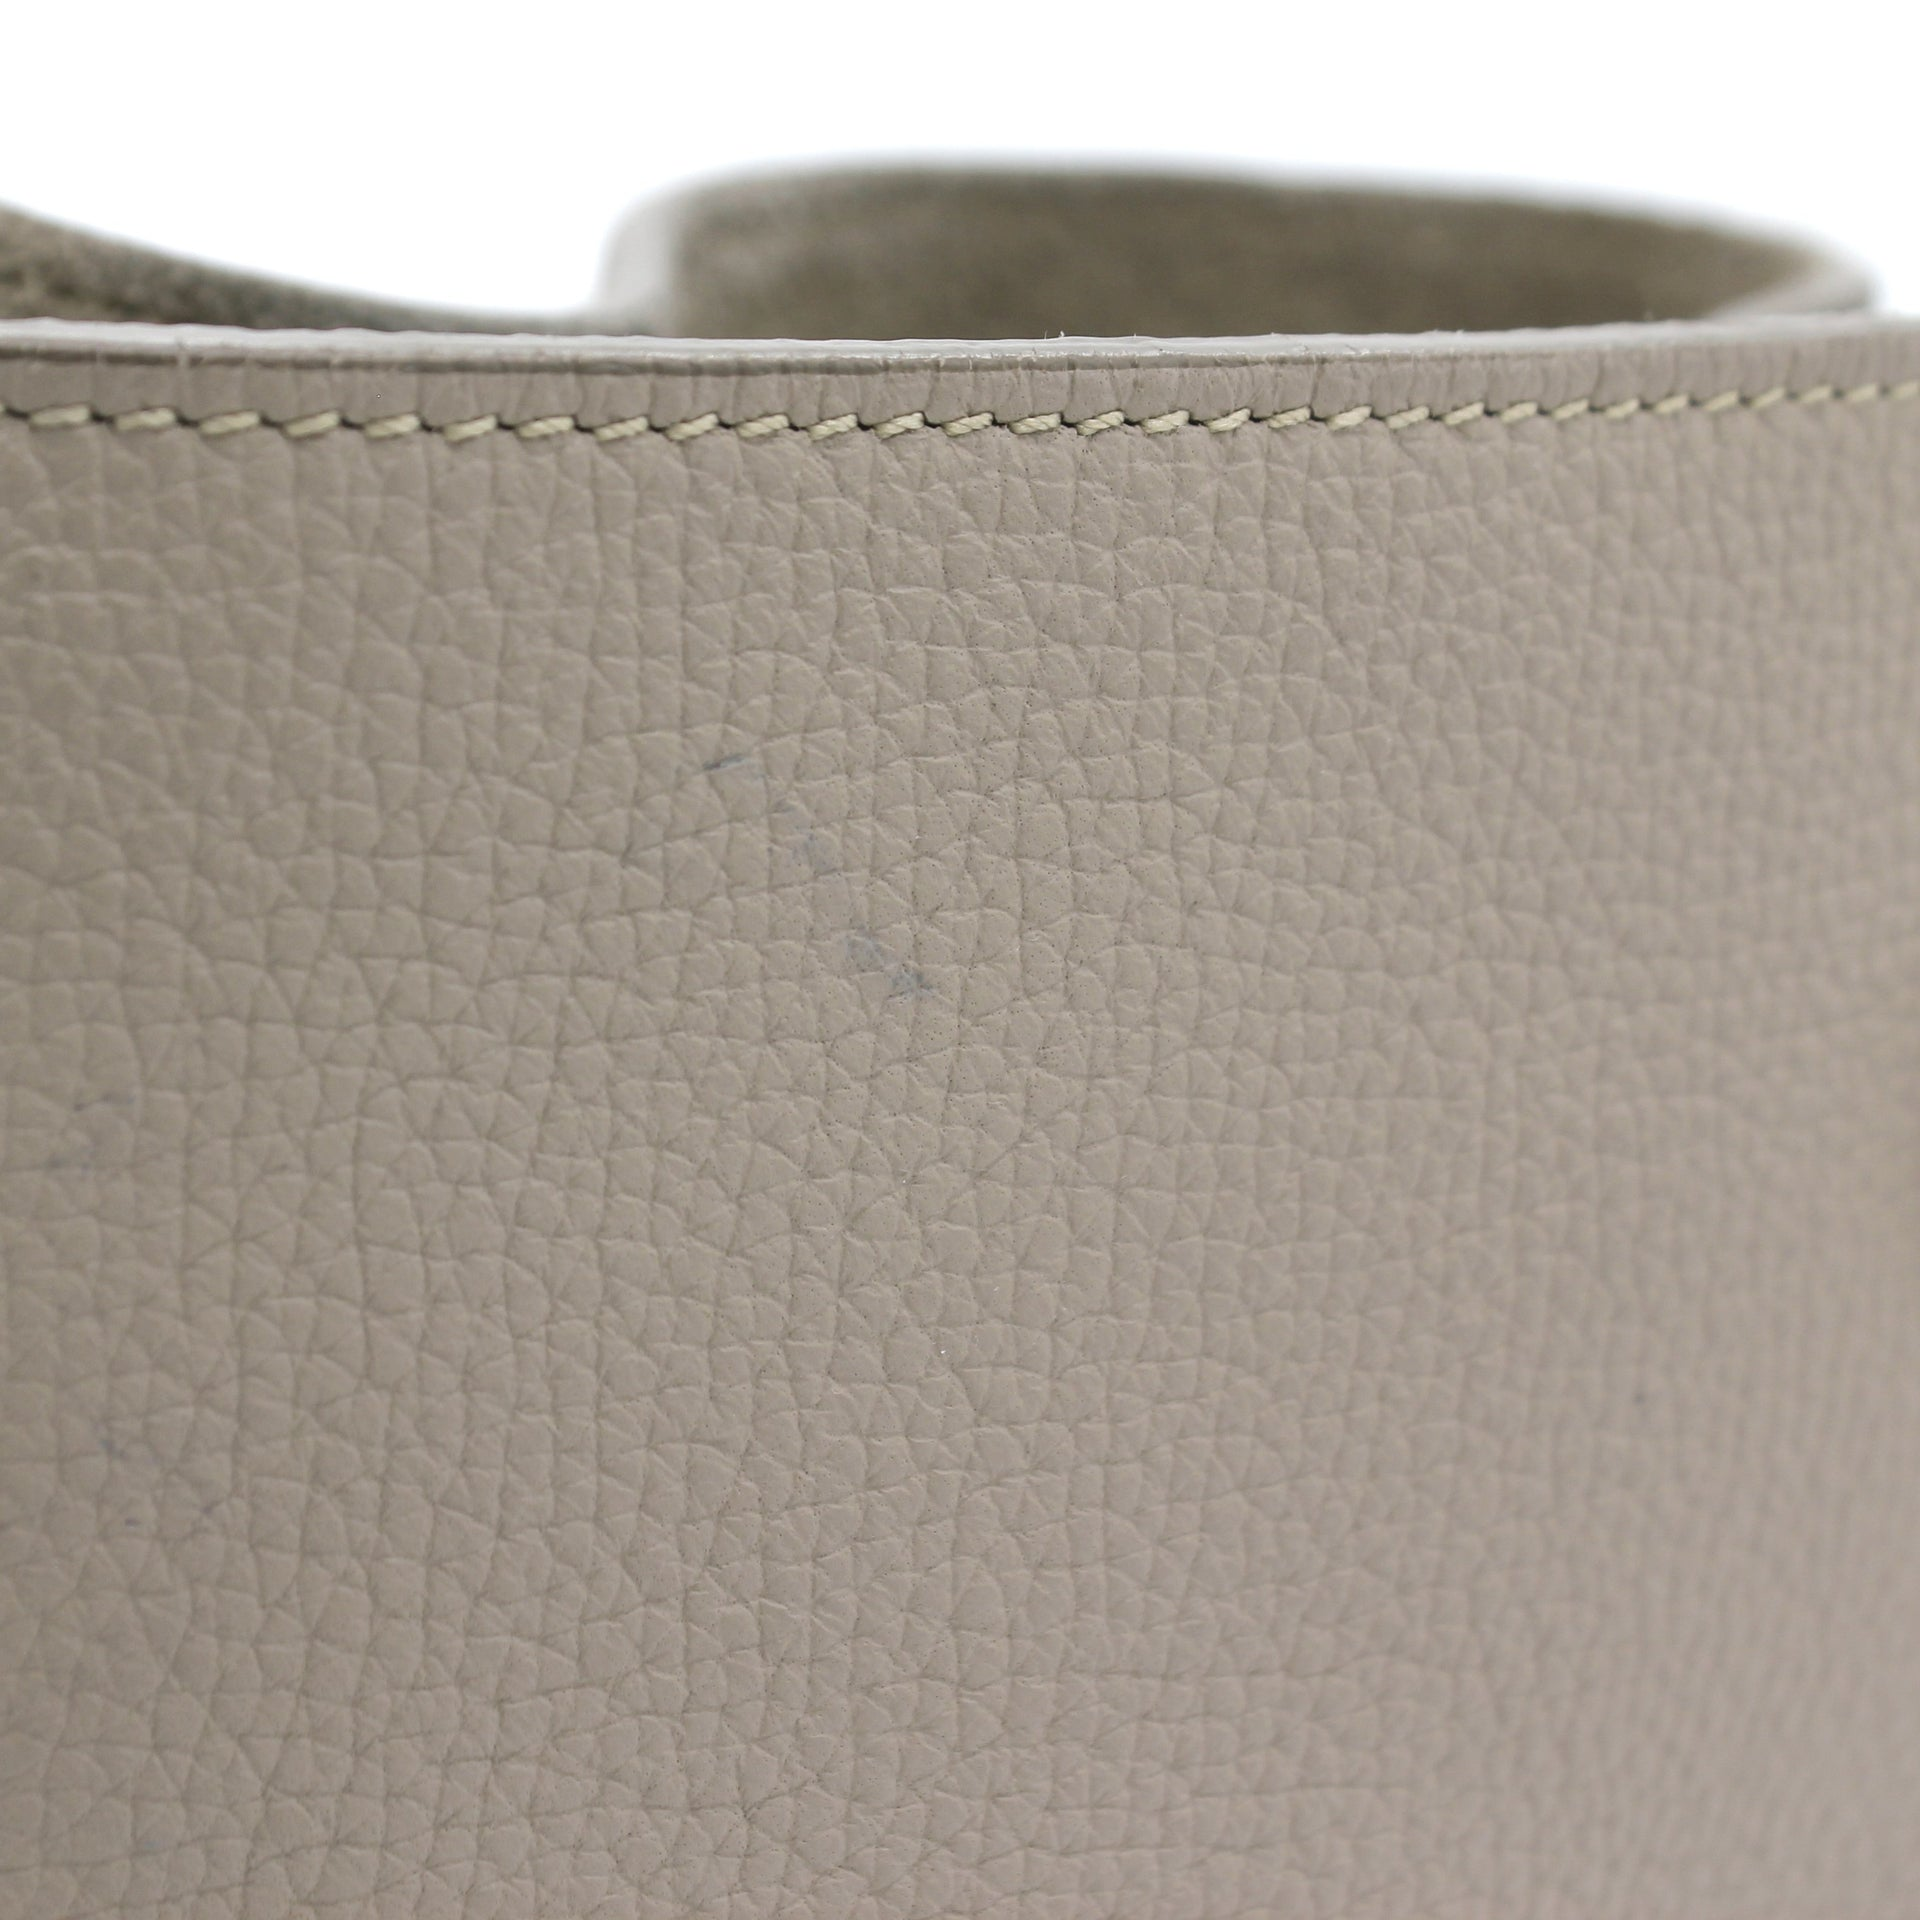 Big Bag Nano Bucket in Grained Calfskin